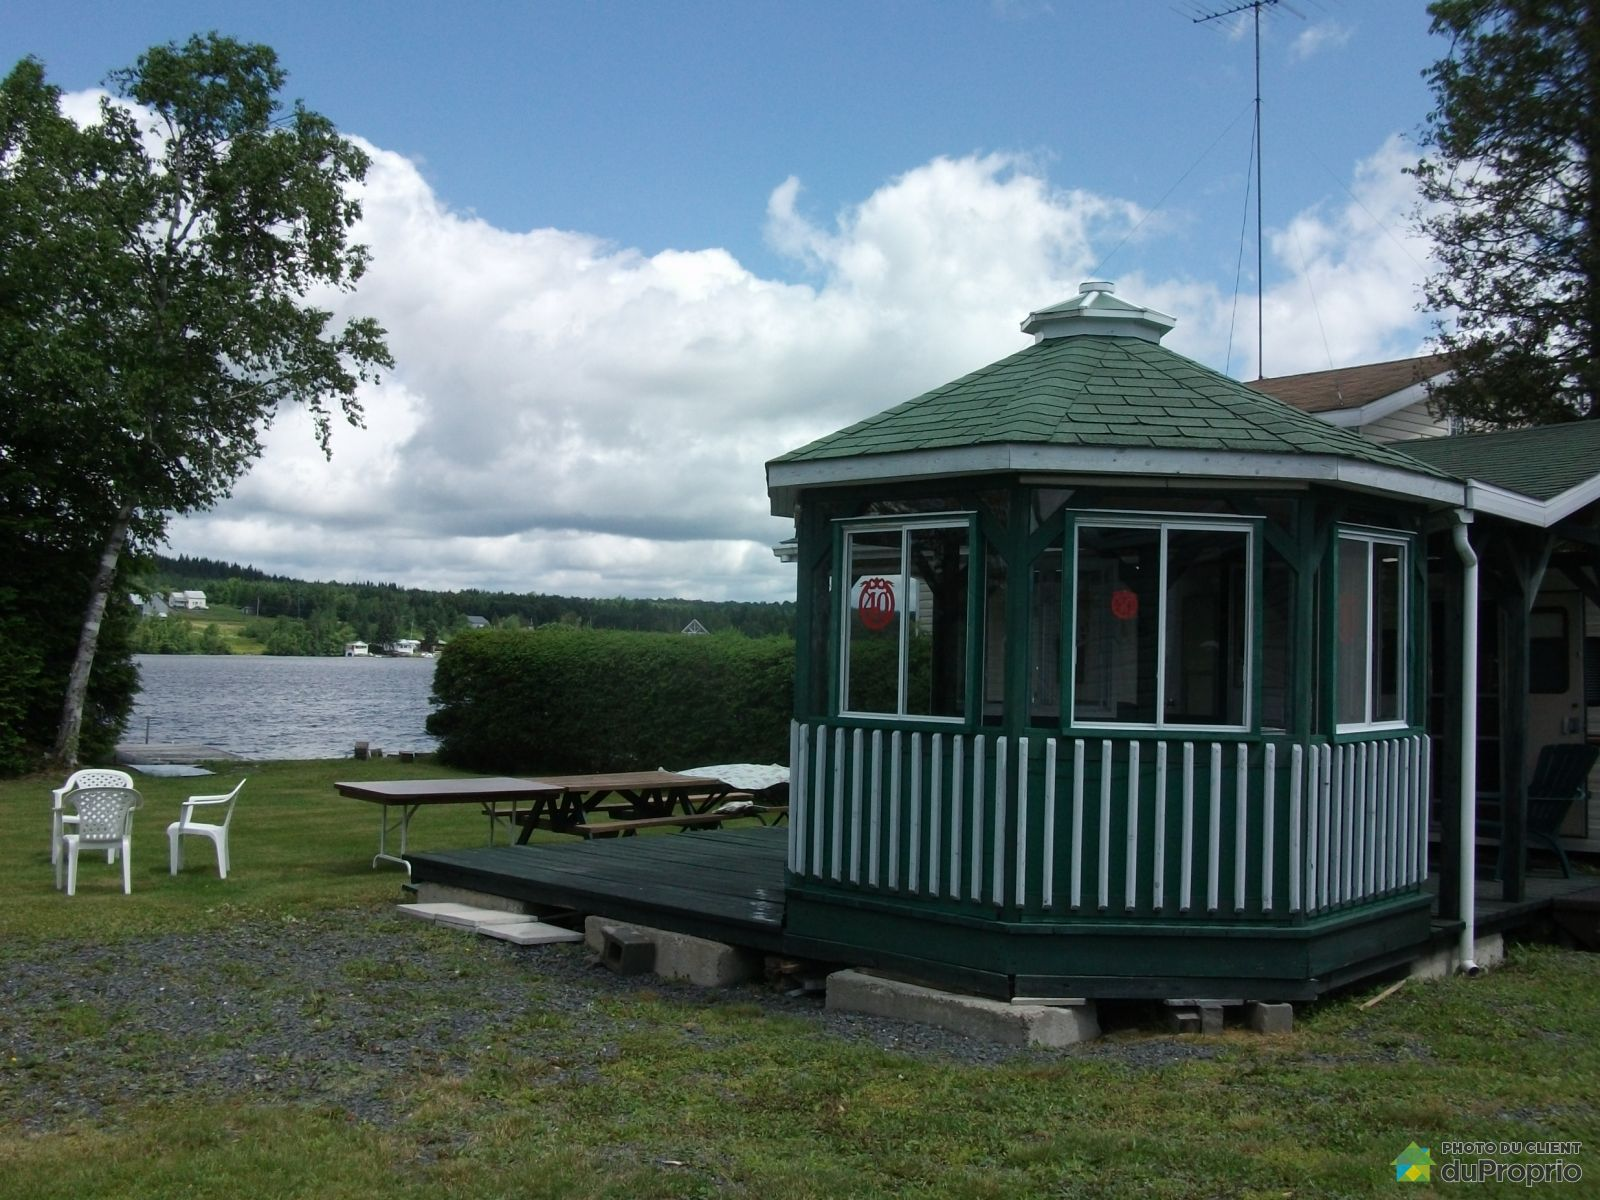 Lake Access - 141 6e Rang A du Lac-Falardeau, St-Zacharie for sale